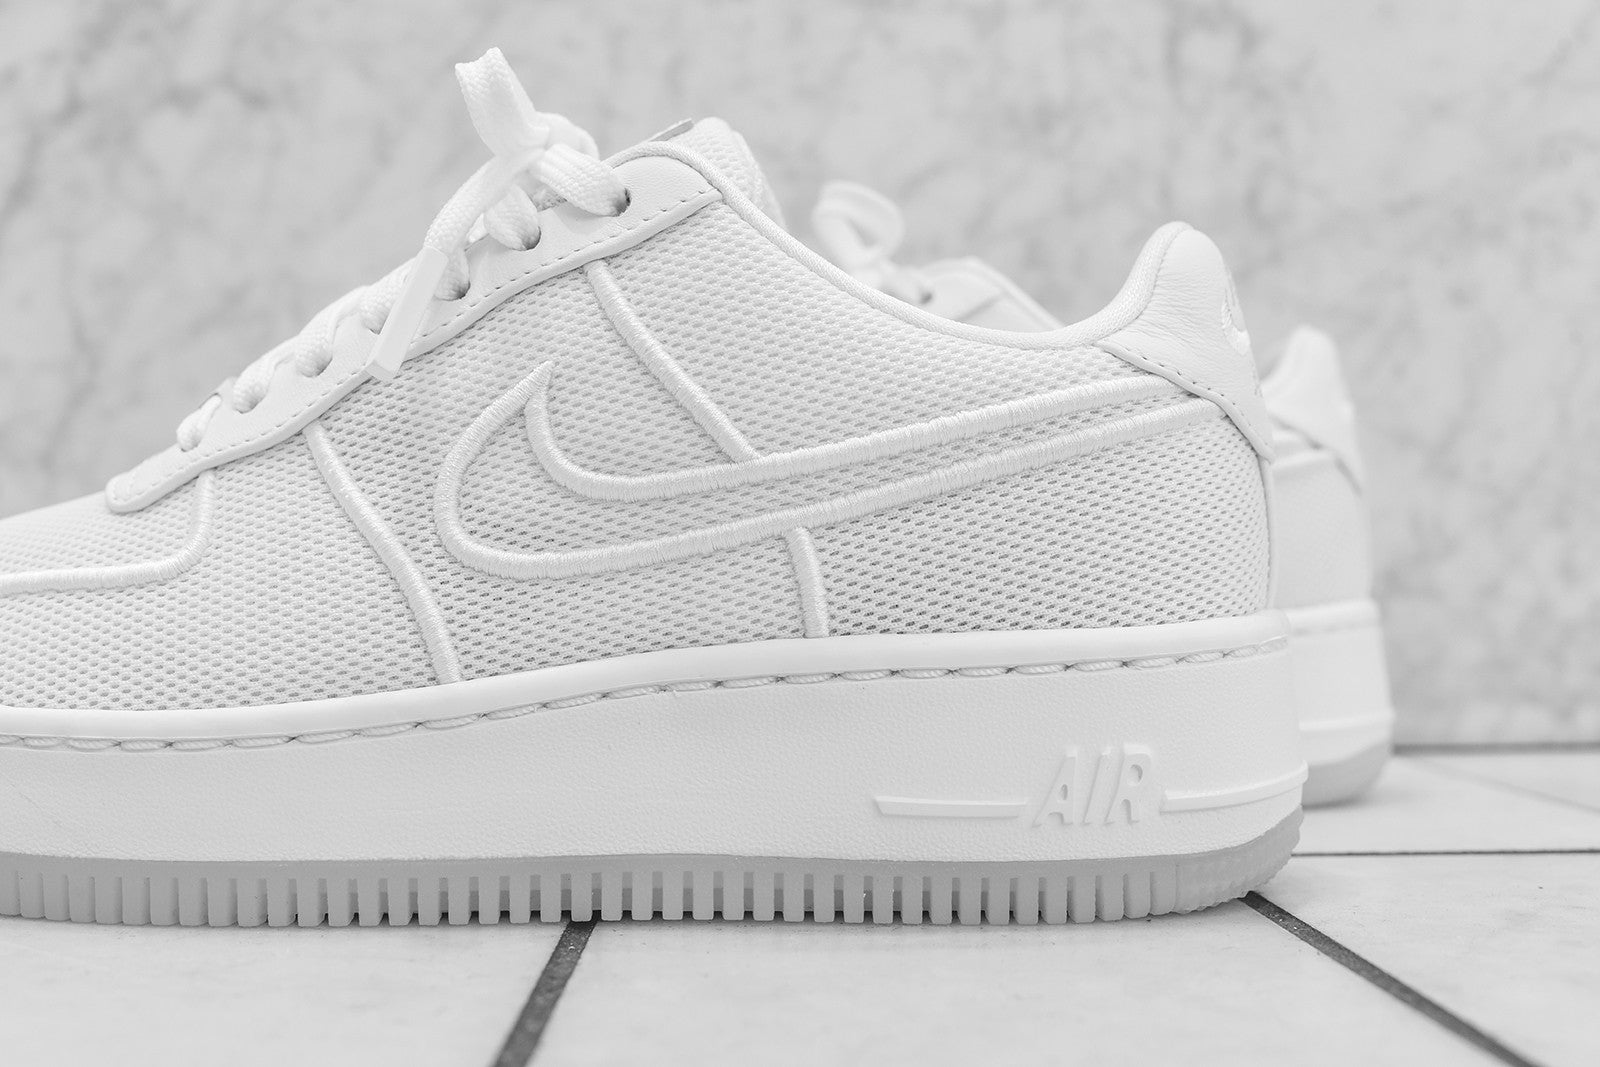 Nike WMNS Air Force 1 Low Upstep Triple White – Kith